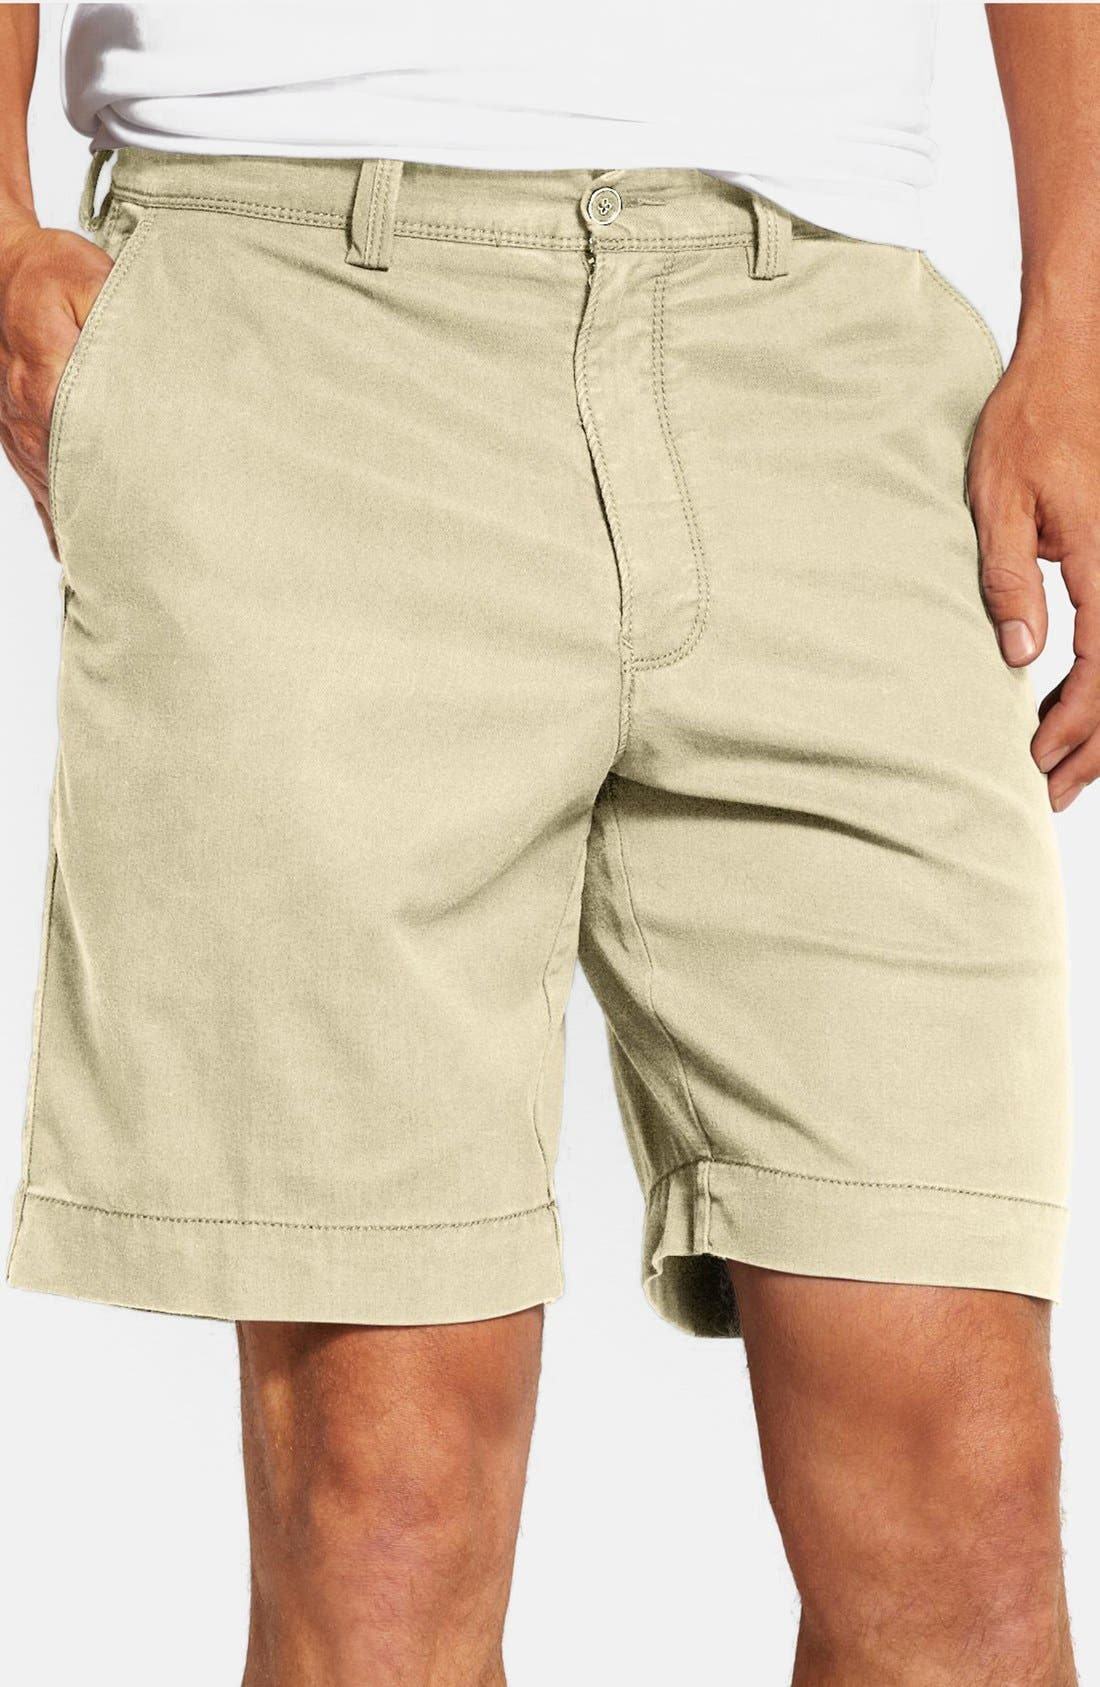 Alternate Image 1 Selected - Tommy Bahama 'Ashore Thing' Shorts (Big and Tall) (Online Only)